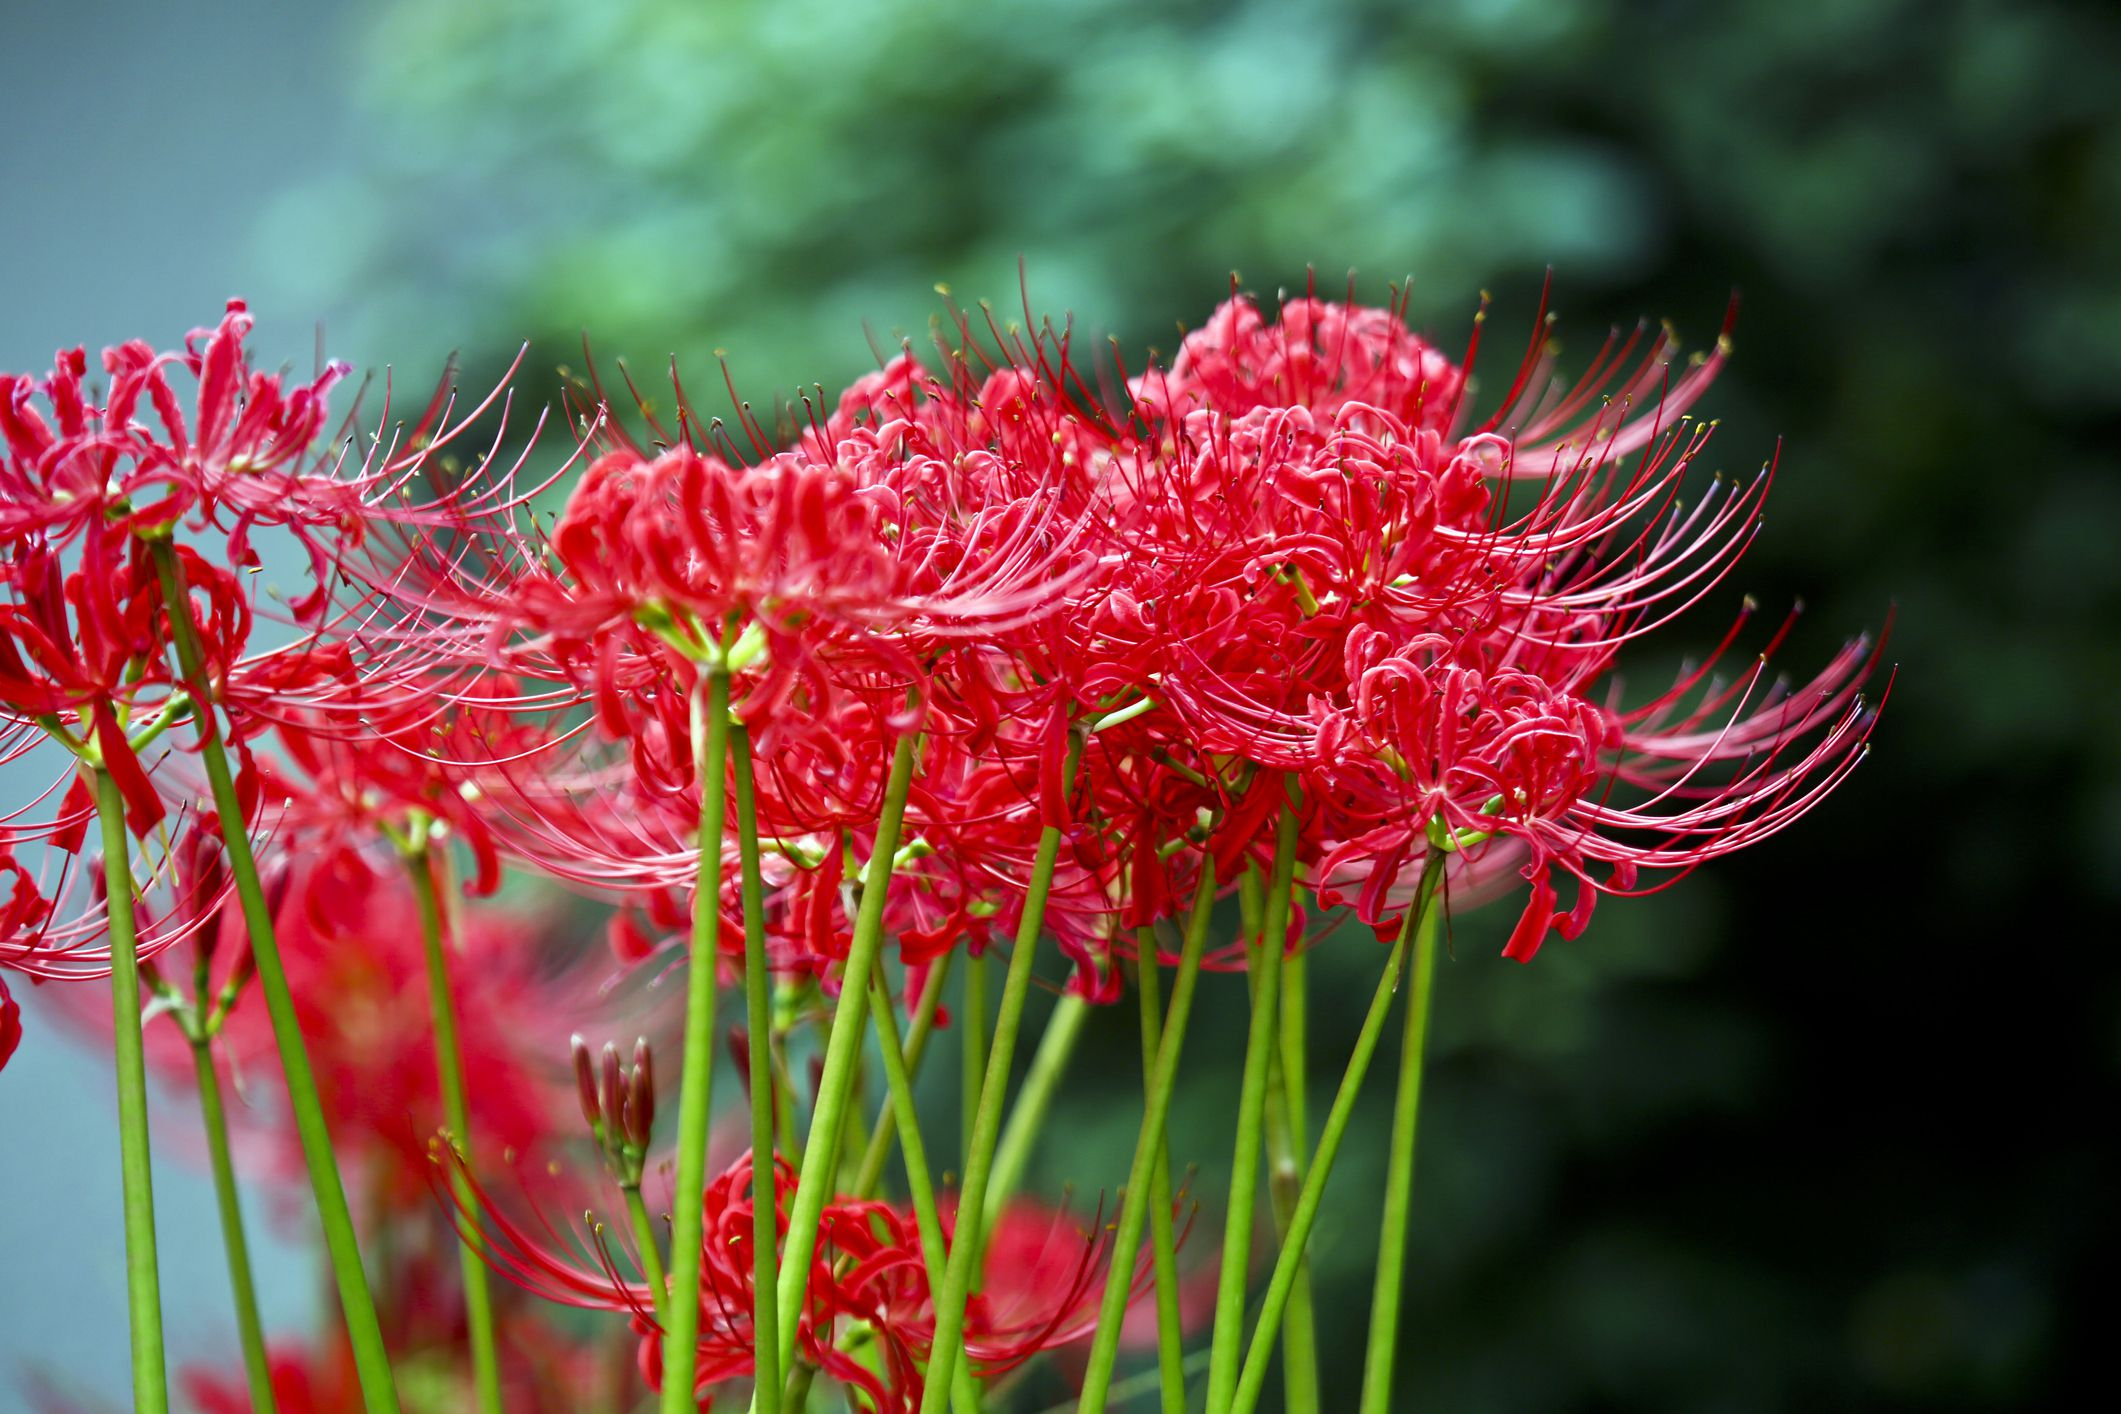 How to Grow and Care for Red Spider Lily